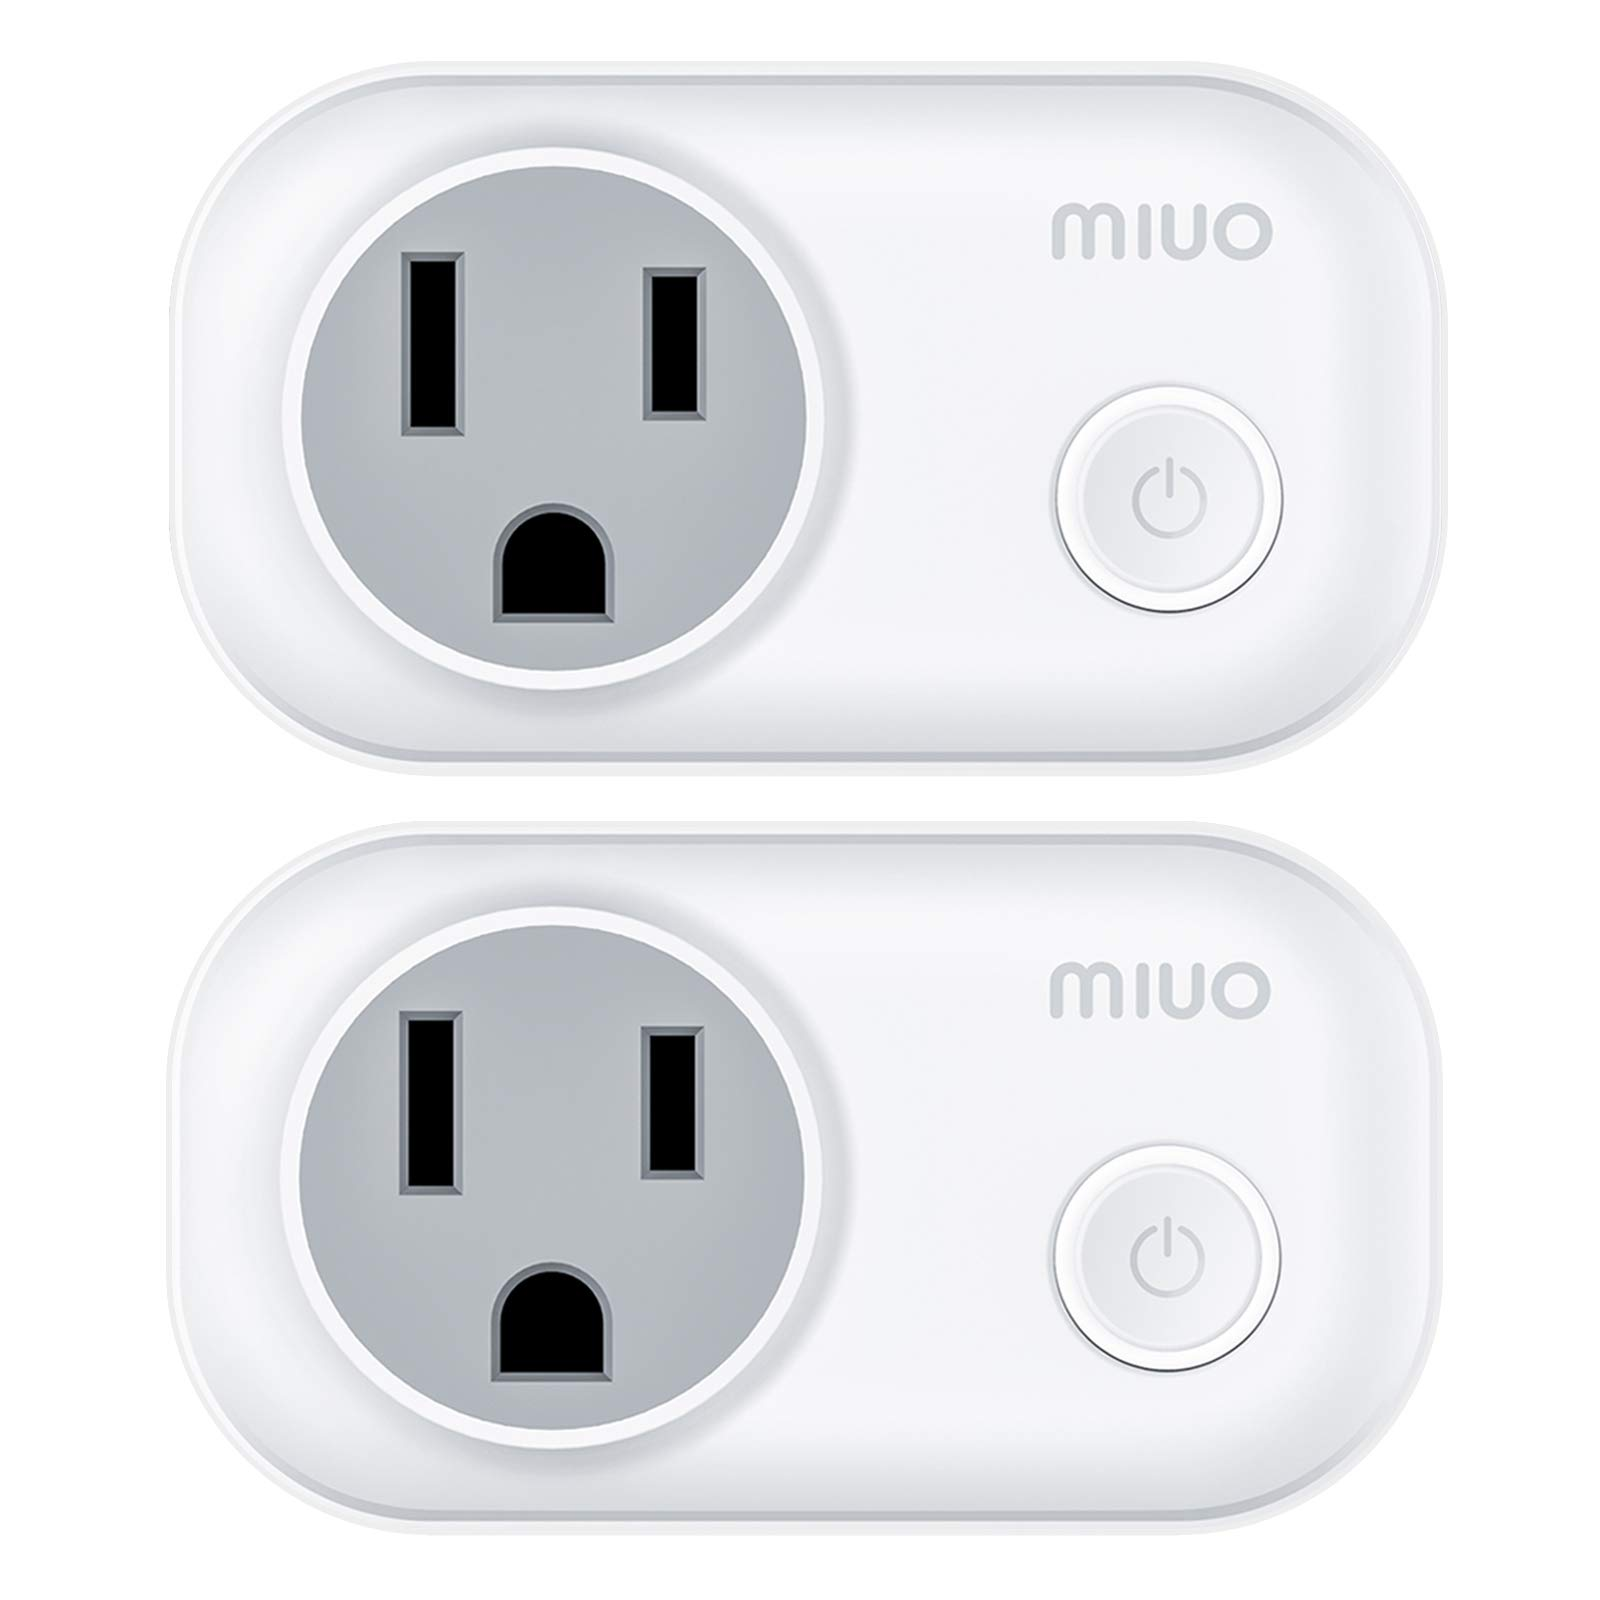 MIUO 2 Pack Smart Plug Socket Energy Monitoring Works with Amazon Alexa and Google Assistant Timer Function Mini Smart WIFI Plug Outlet